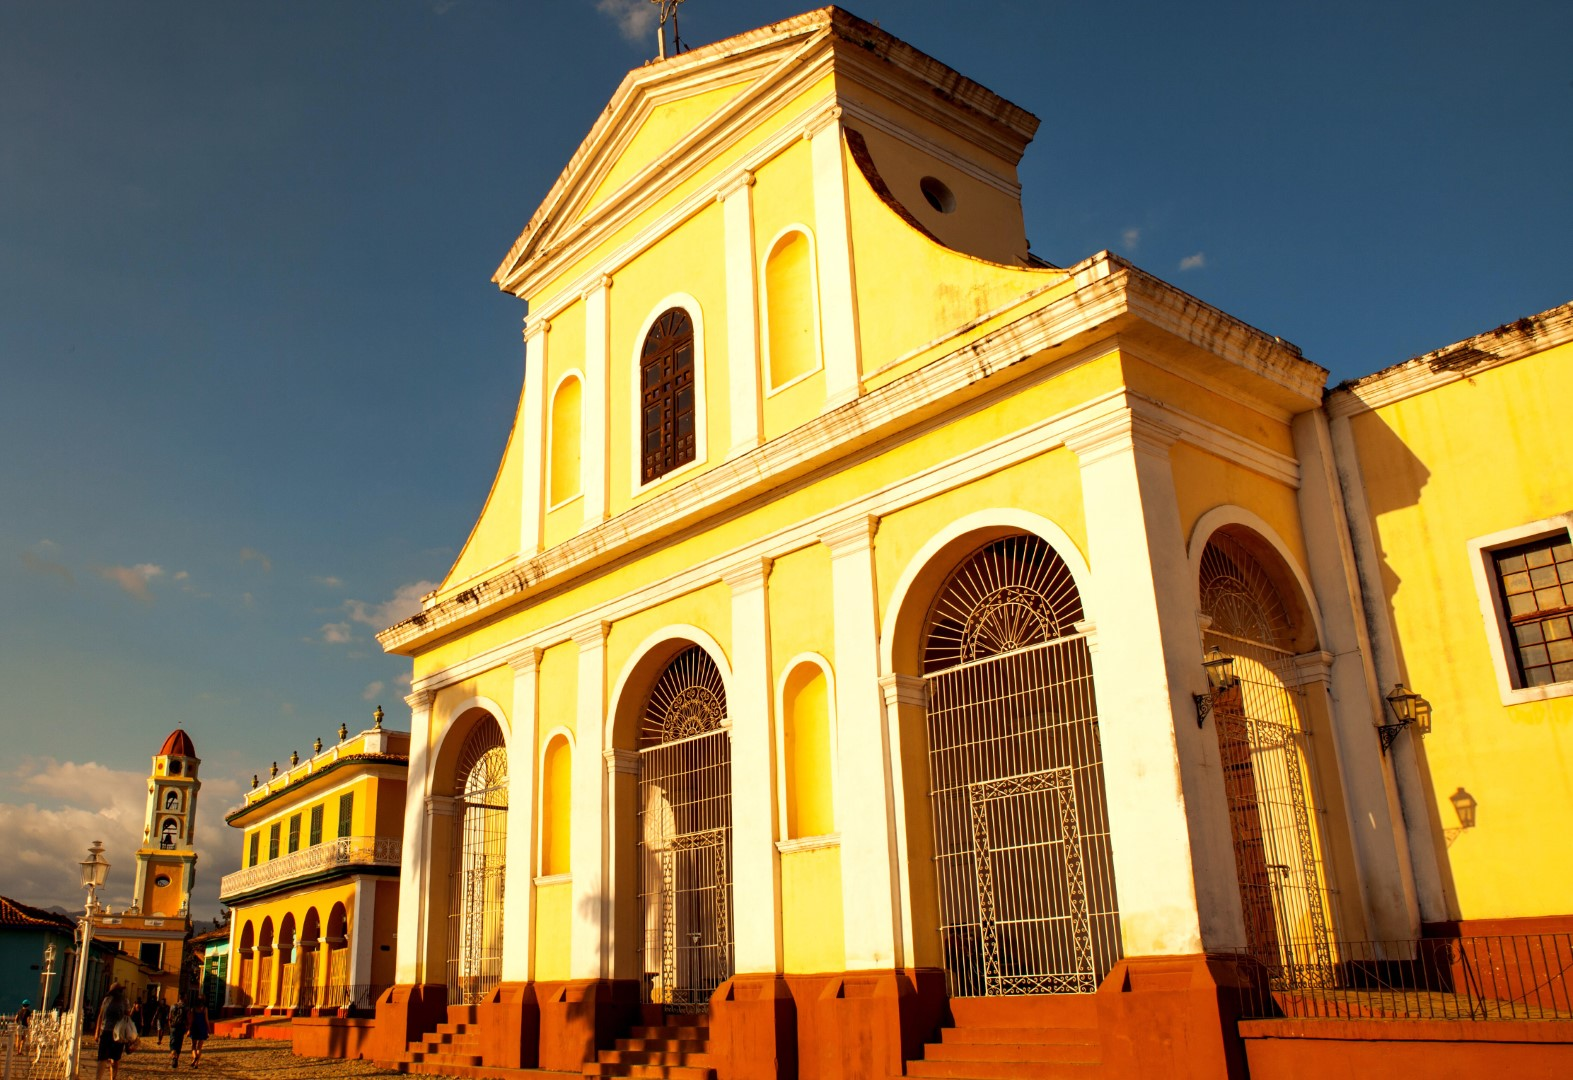 Church in centre of Trinidad, Cuba